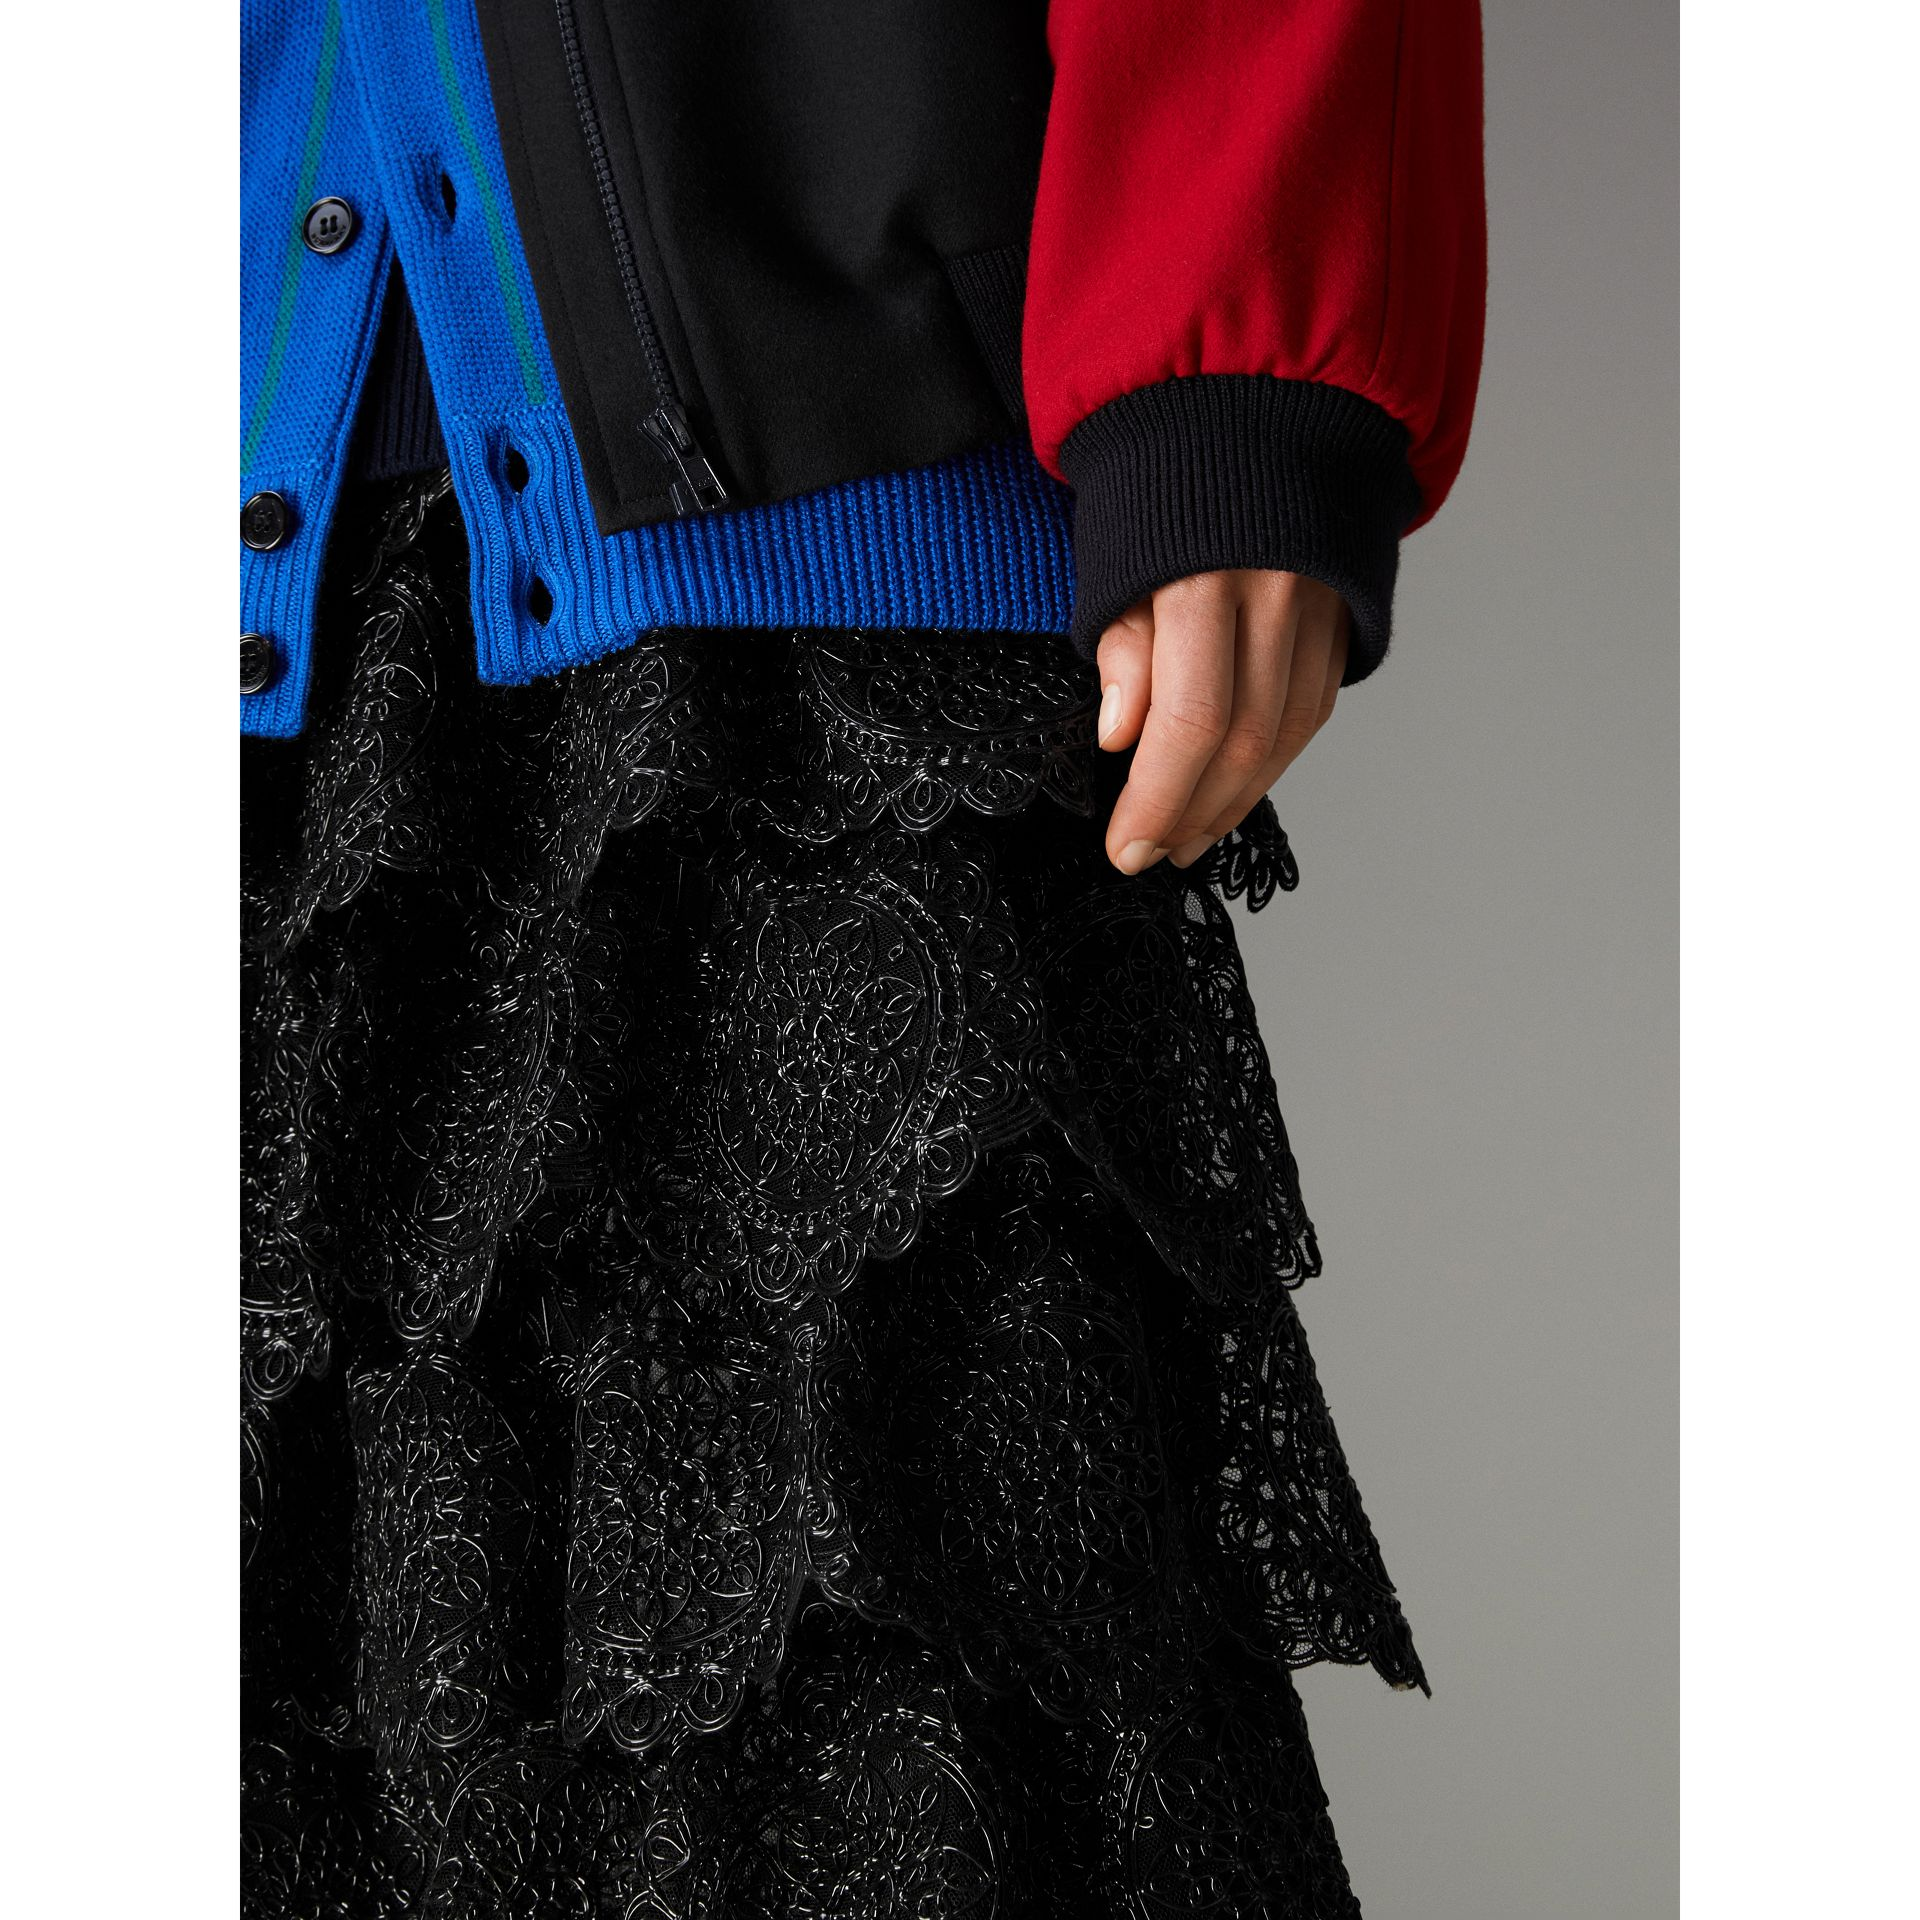 Tiered Silicone Lace Skirt in Black - Women | Burberry - gallery image 1